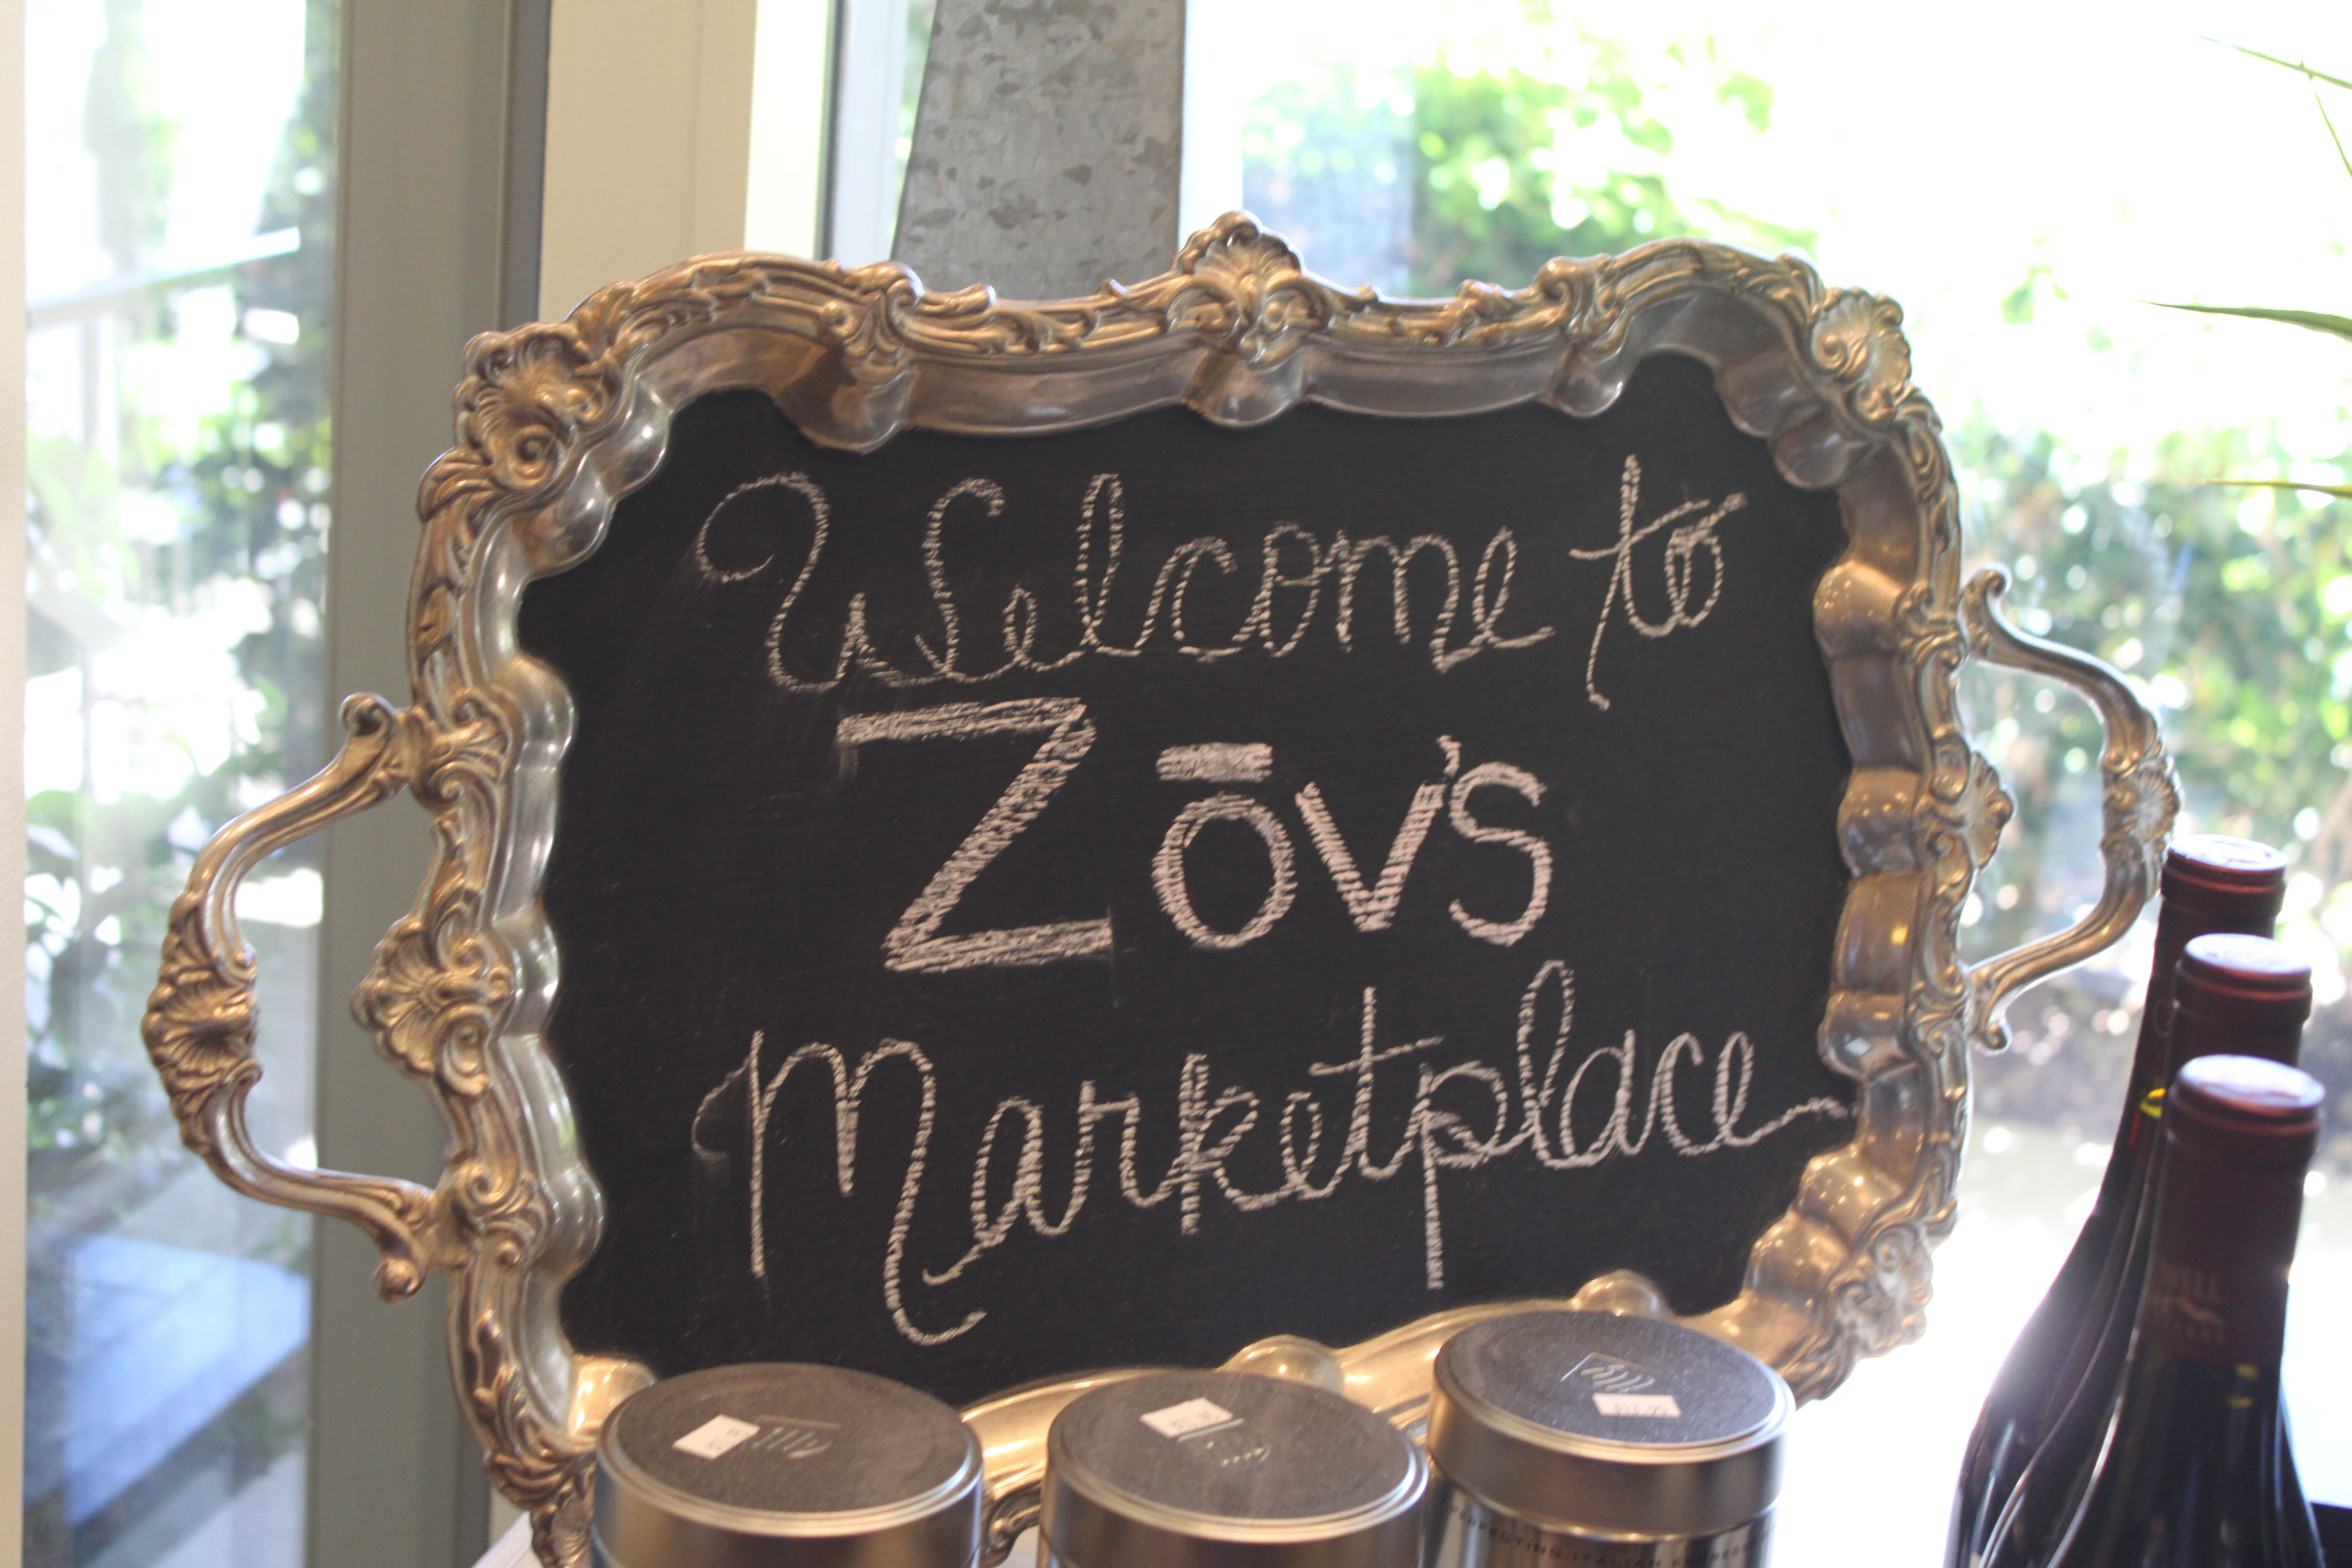 Zov's Marketplace